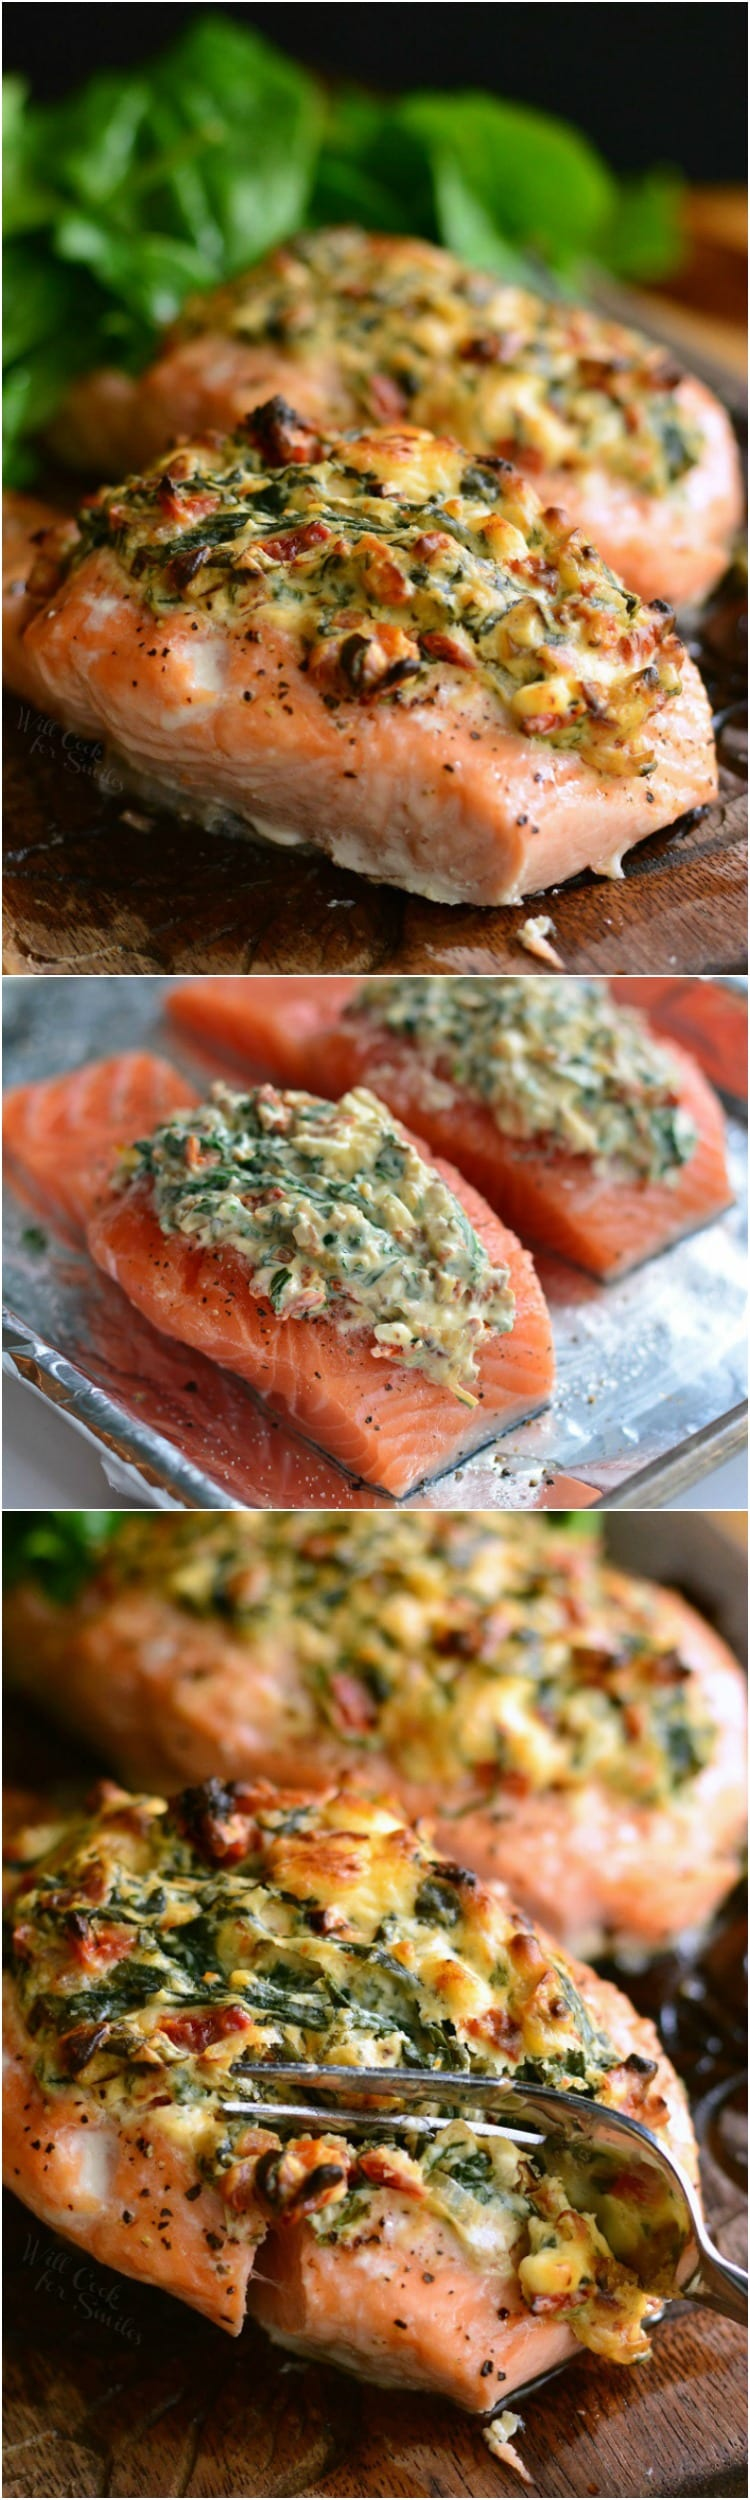 Creamy Spinach and Sun Dried Tomato Stuffed Salmon on a cutting board  and on baking sheet collage